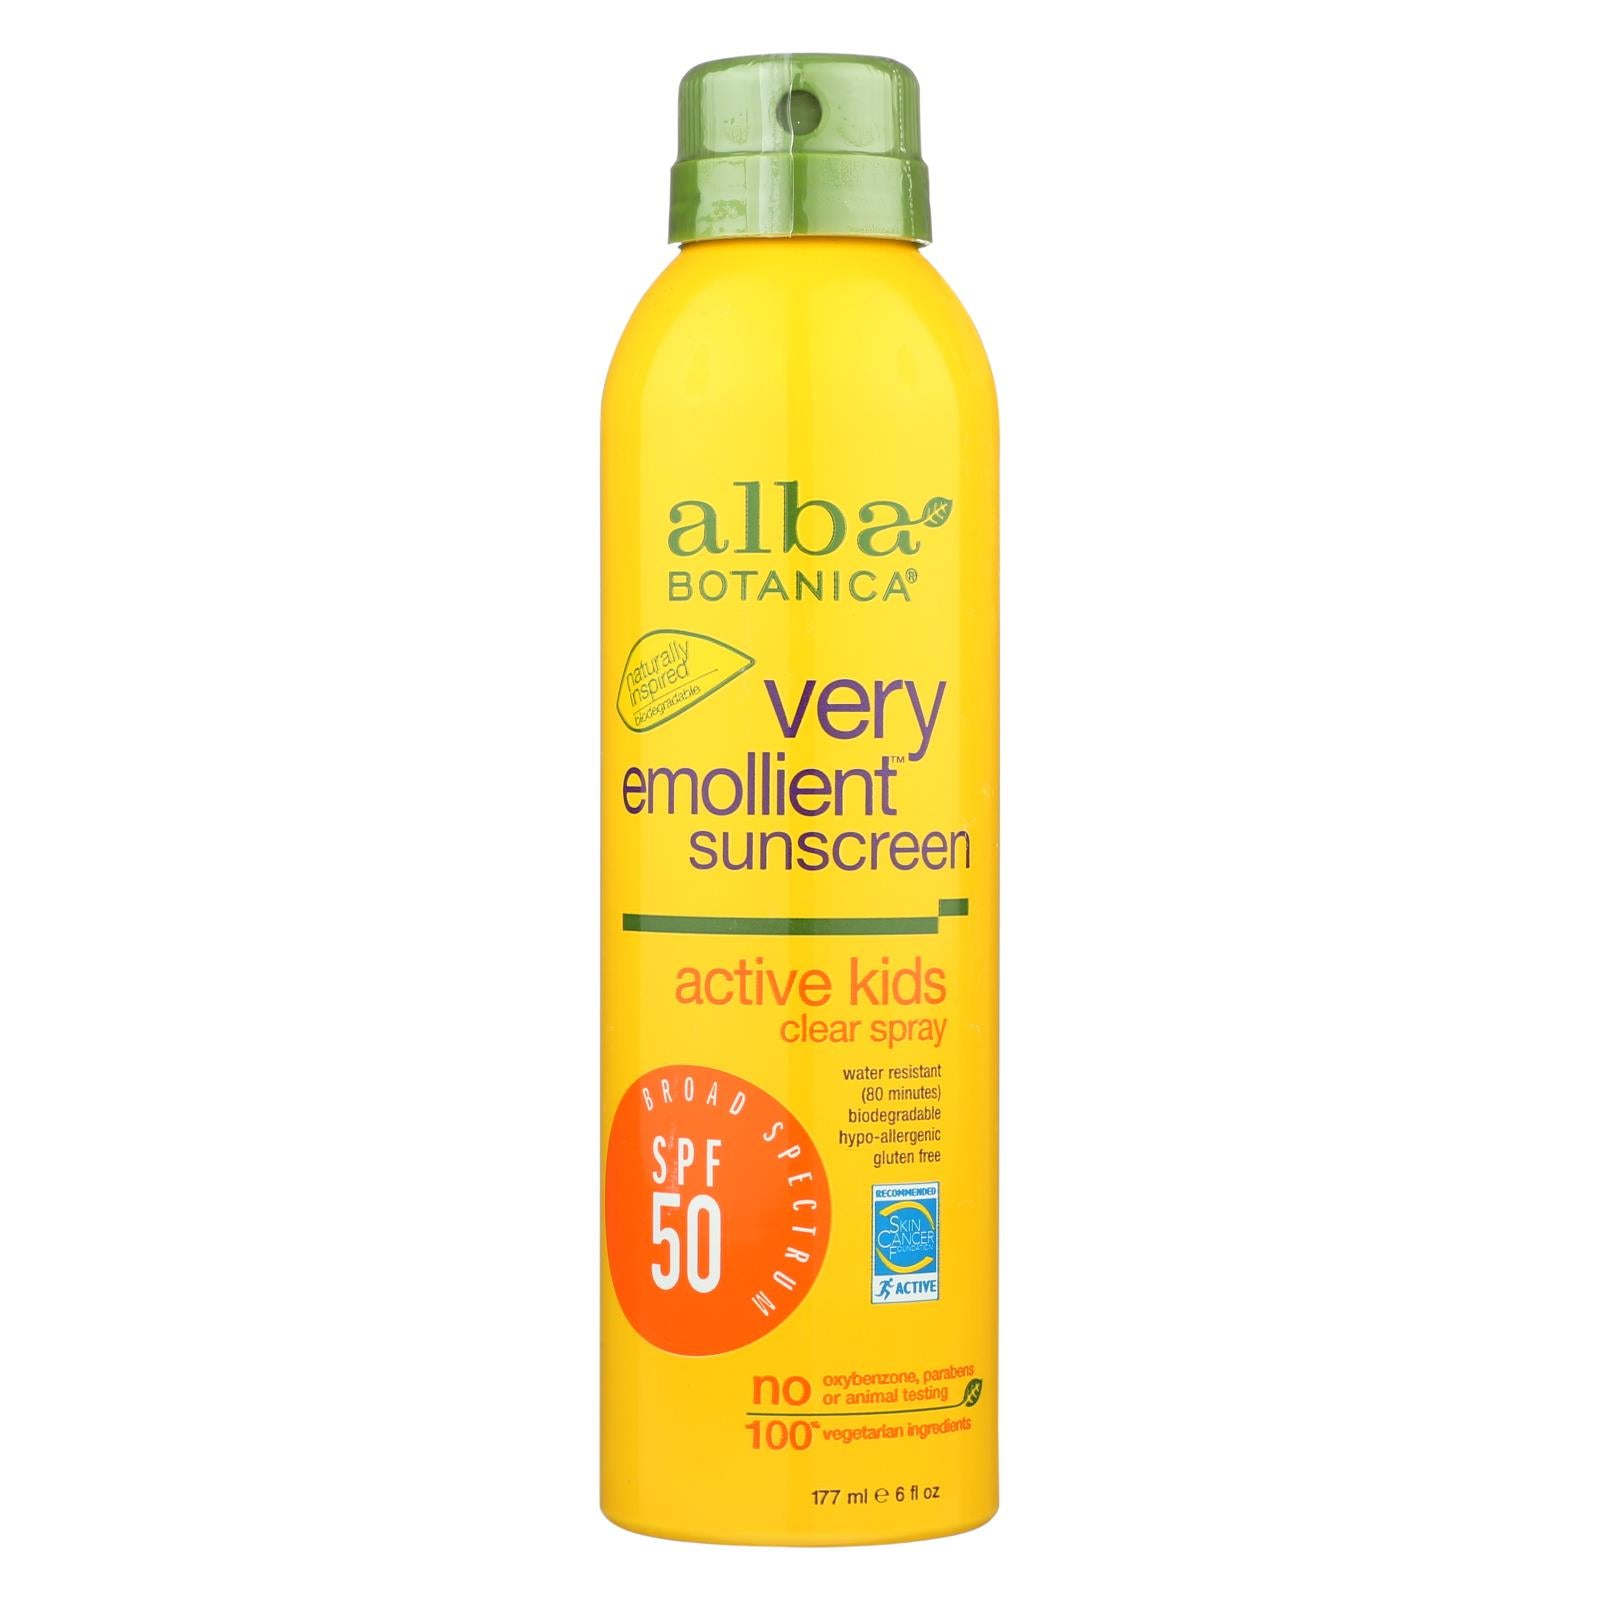 Buy Alba Botanica Sunscreen - Very Emollient - Clear Spray SPF 50 - Active Kids - 6 oz - Baby Skin and Sun from Veroeco.com